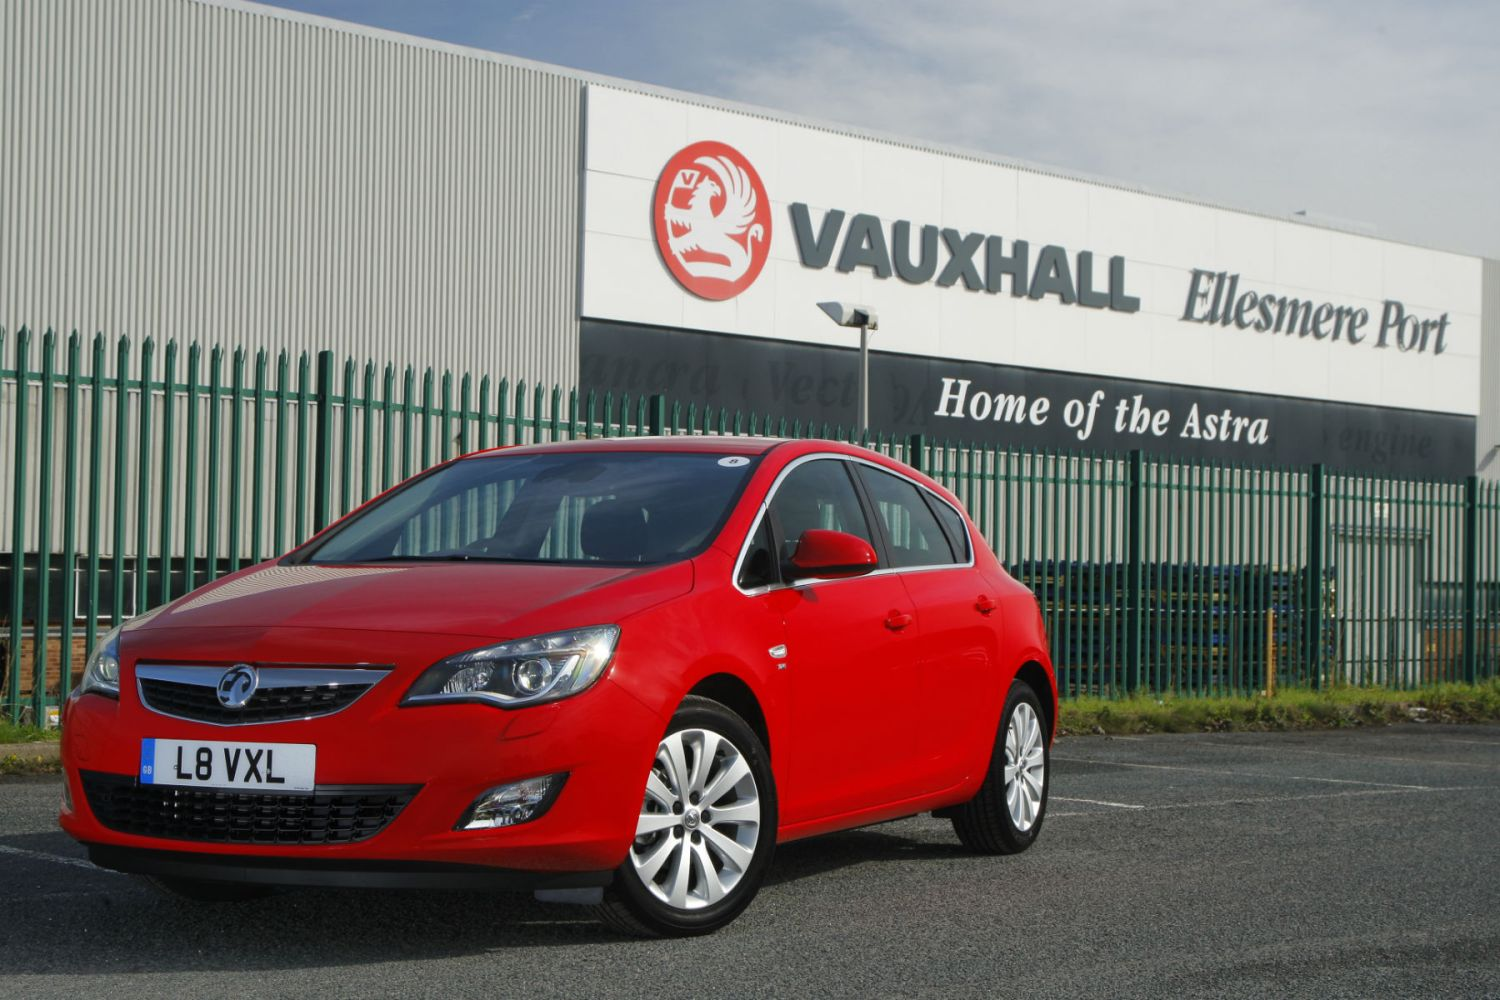 Confirmed: PSA Group is buying Vauxhall for £1.9bn